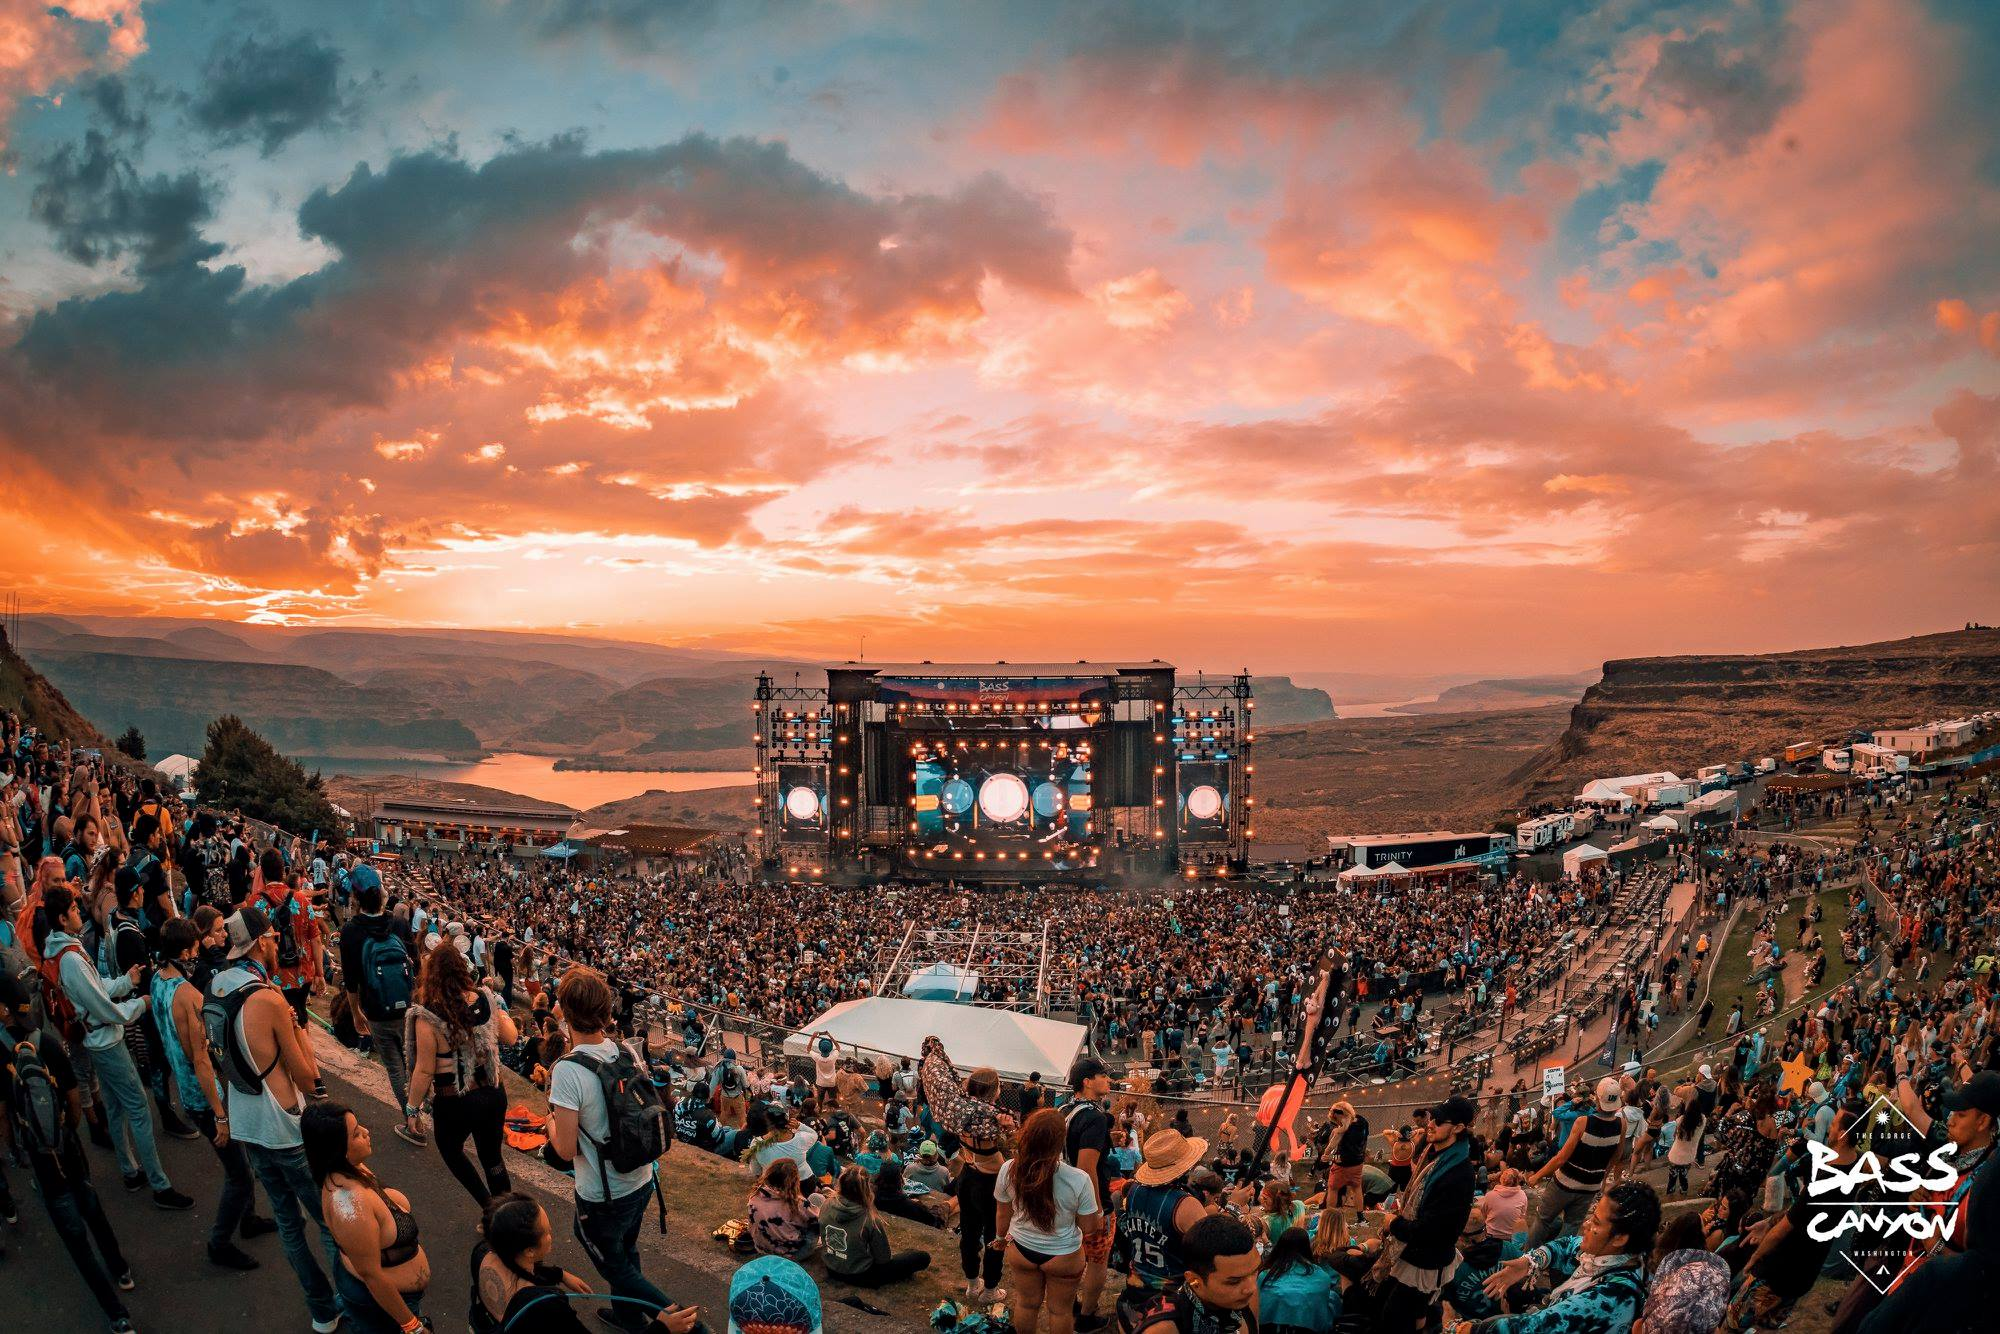 PK SOUND DELIVERS PRISTINE SOUND FOR INAUGURAL BASS CANYON FESTIVAL